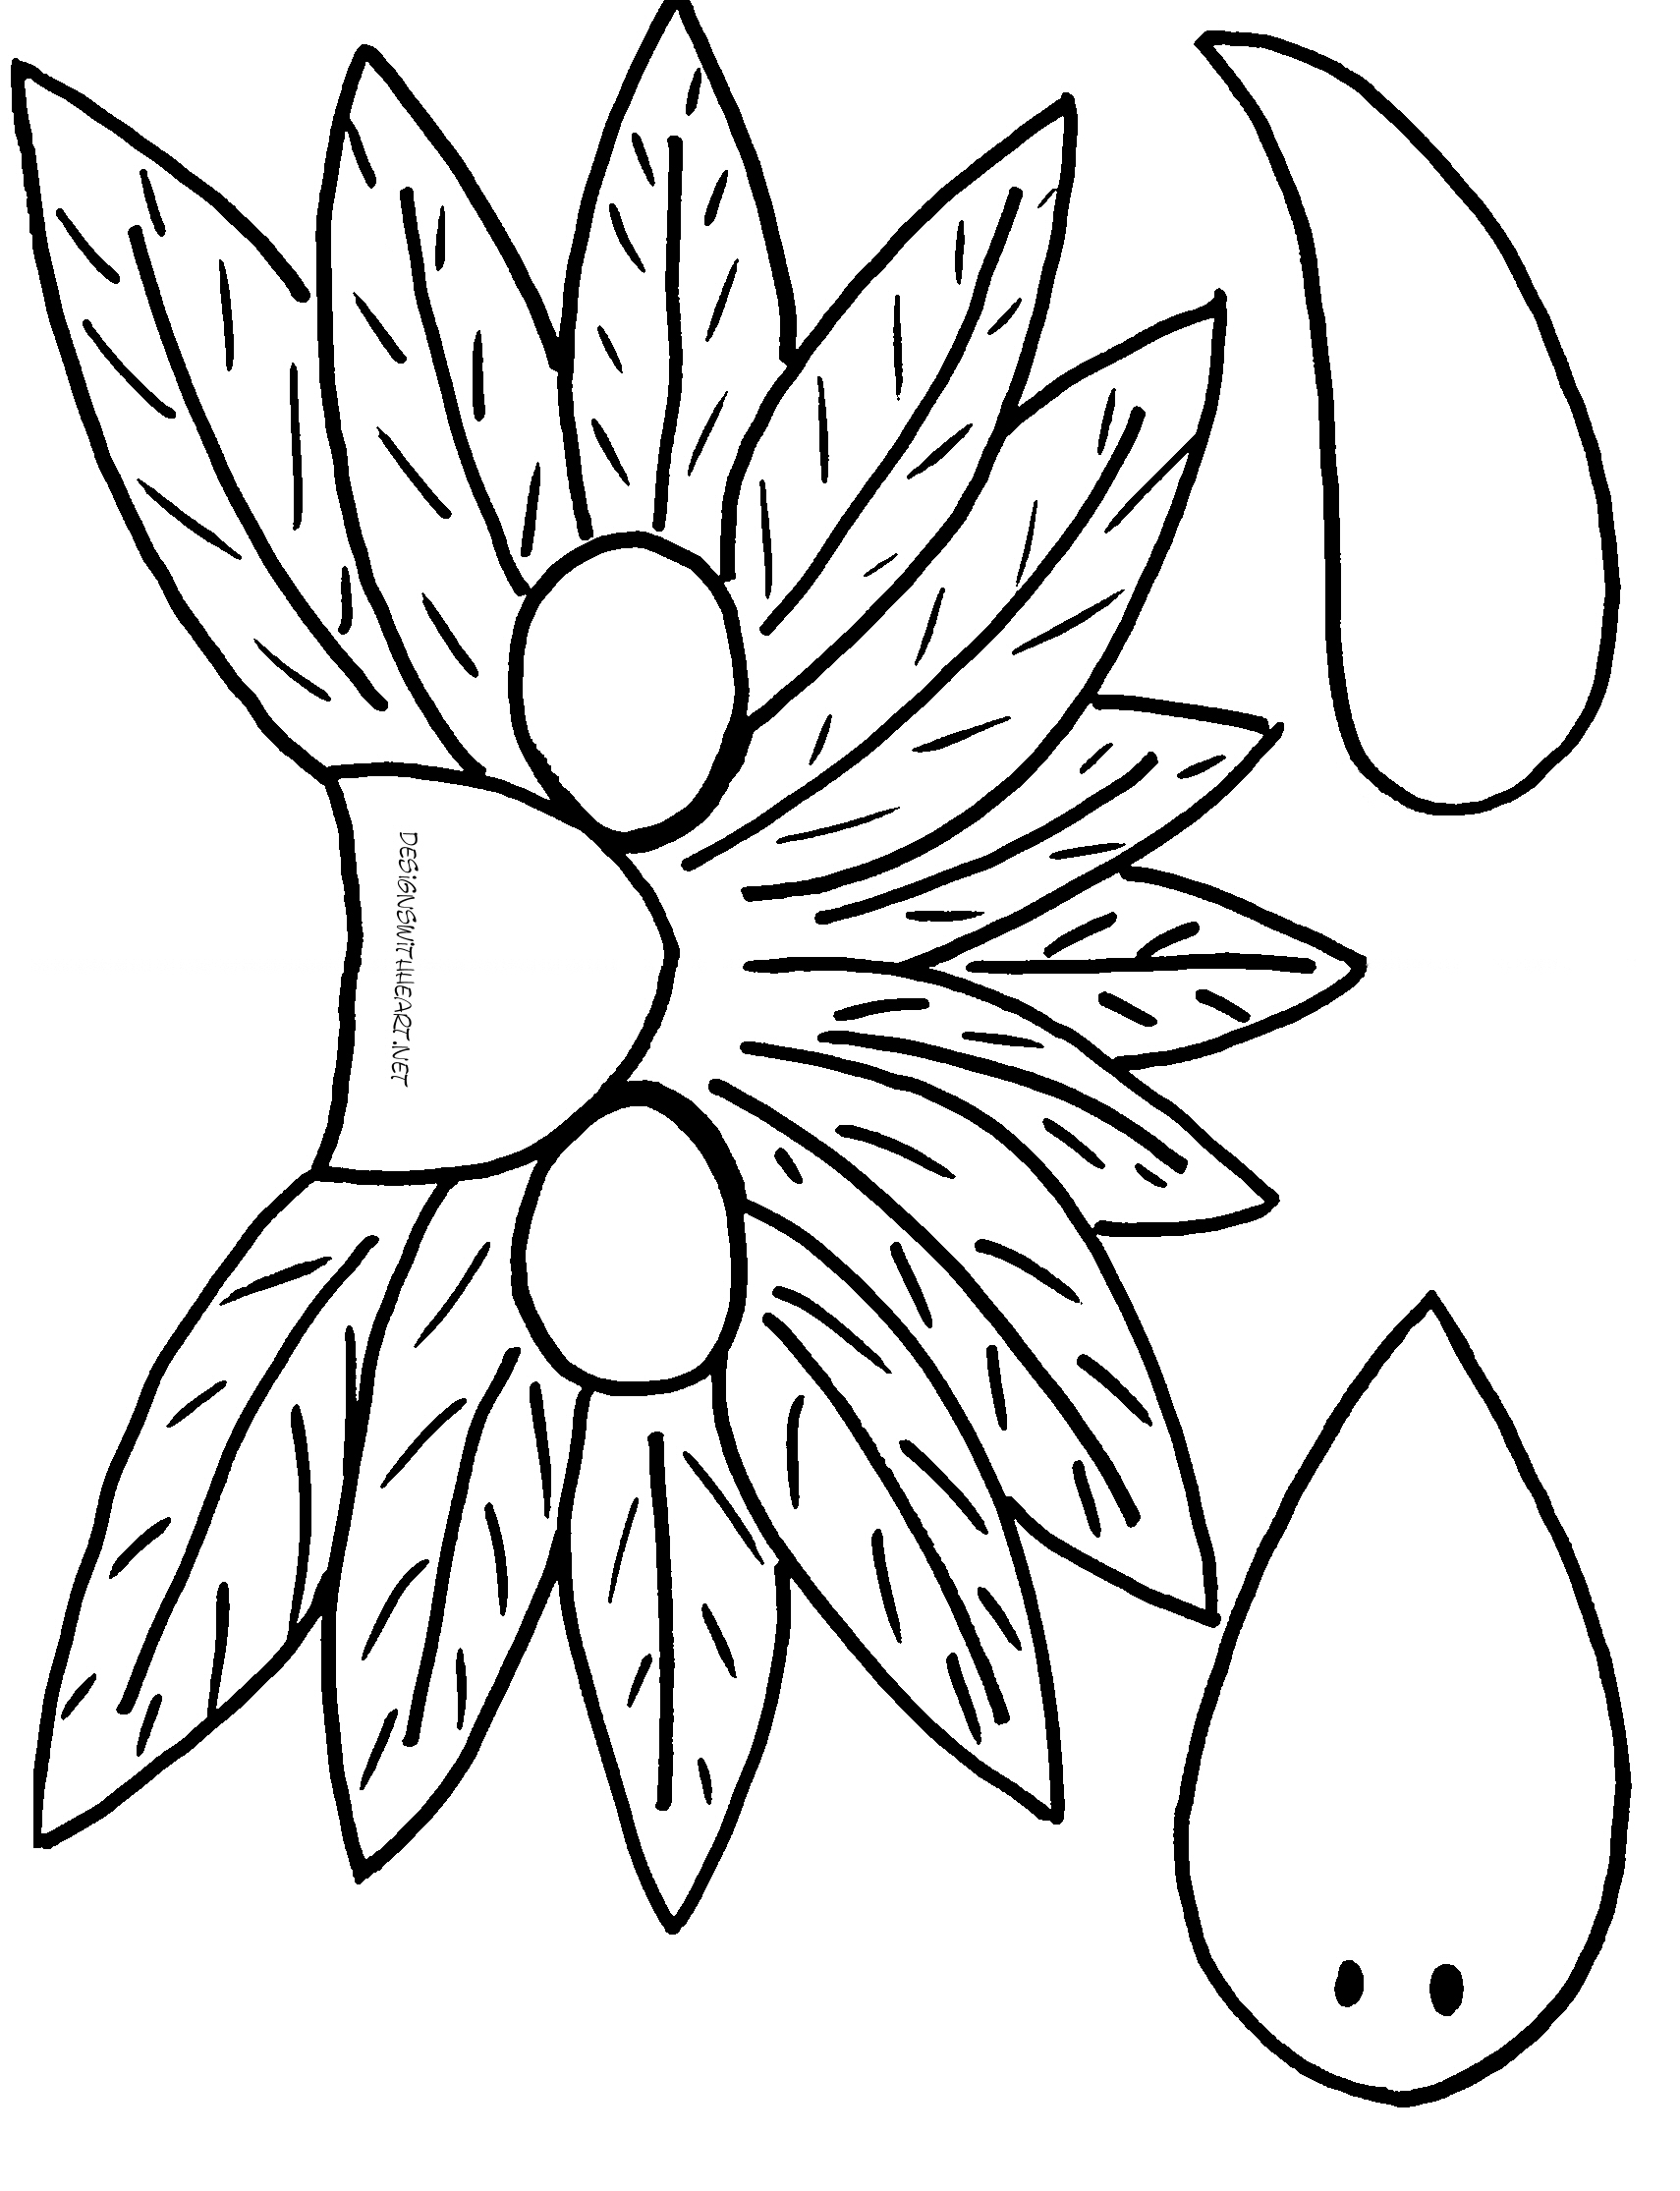 Flower Drawing Template at GetDrawings.com | Free for personal use ...